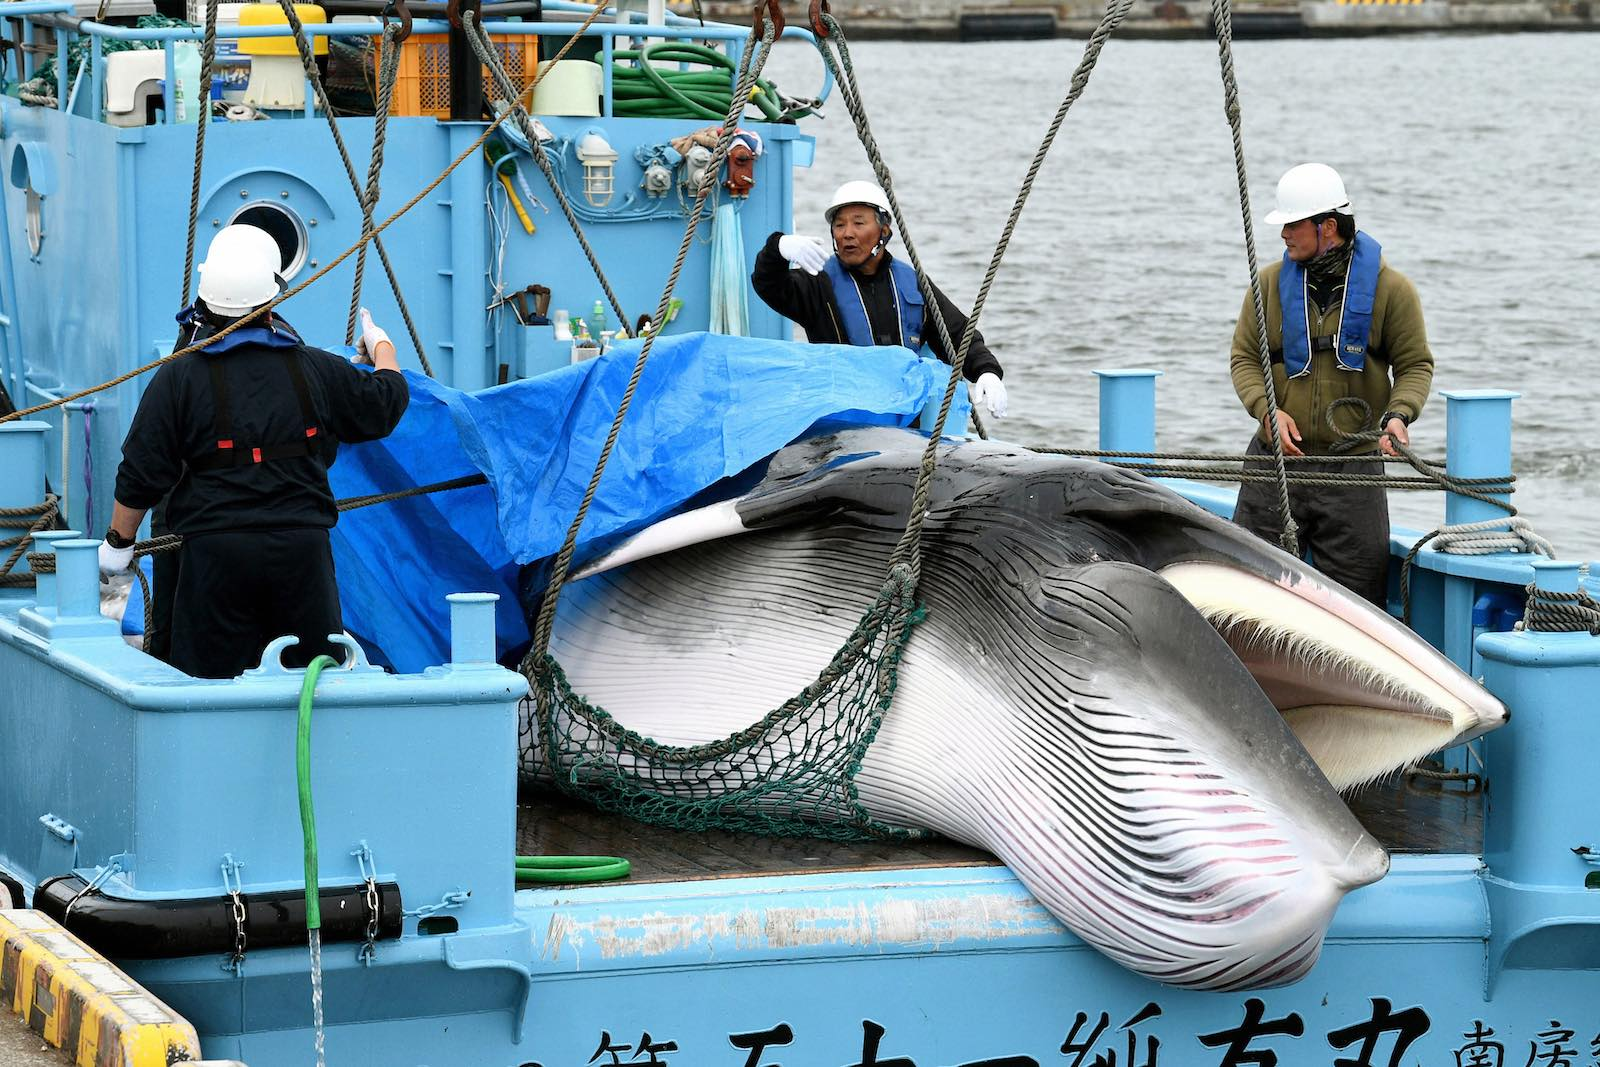 A minke whale is unloaded at Kushiro Port on the first day of the commercial whale hunt, 1 July 2019, in Kushiro, Hokkaido, Japan (Photo: The Asahi Shimbun via Getty)